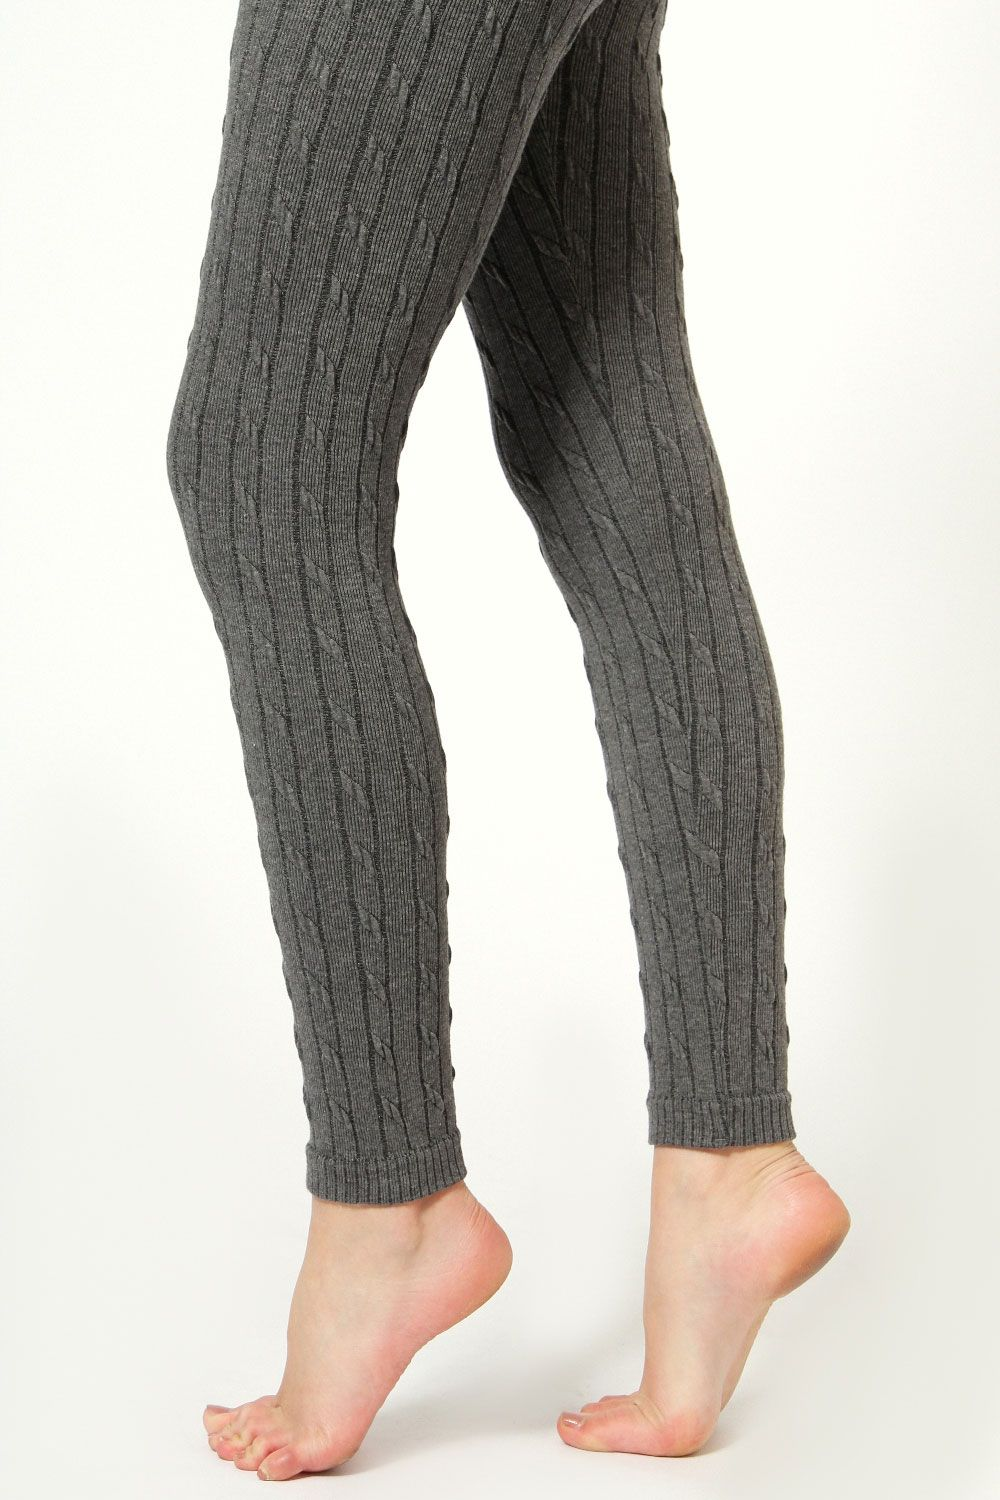 Pippa Knitted Cable Knit Leggings Dream Closet